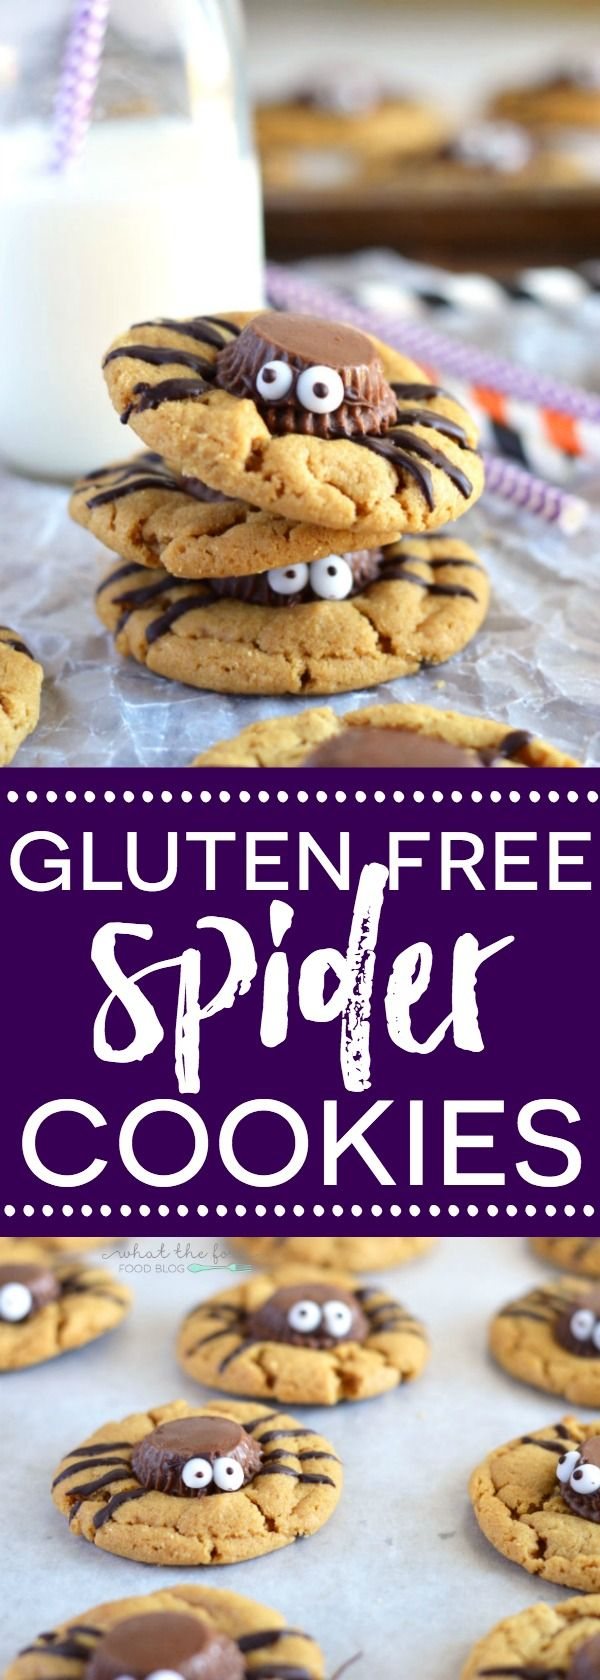 201 best images about Halloween Food Recipes on Pinterest ...